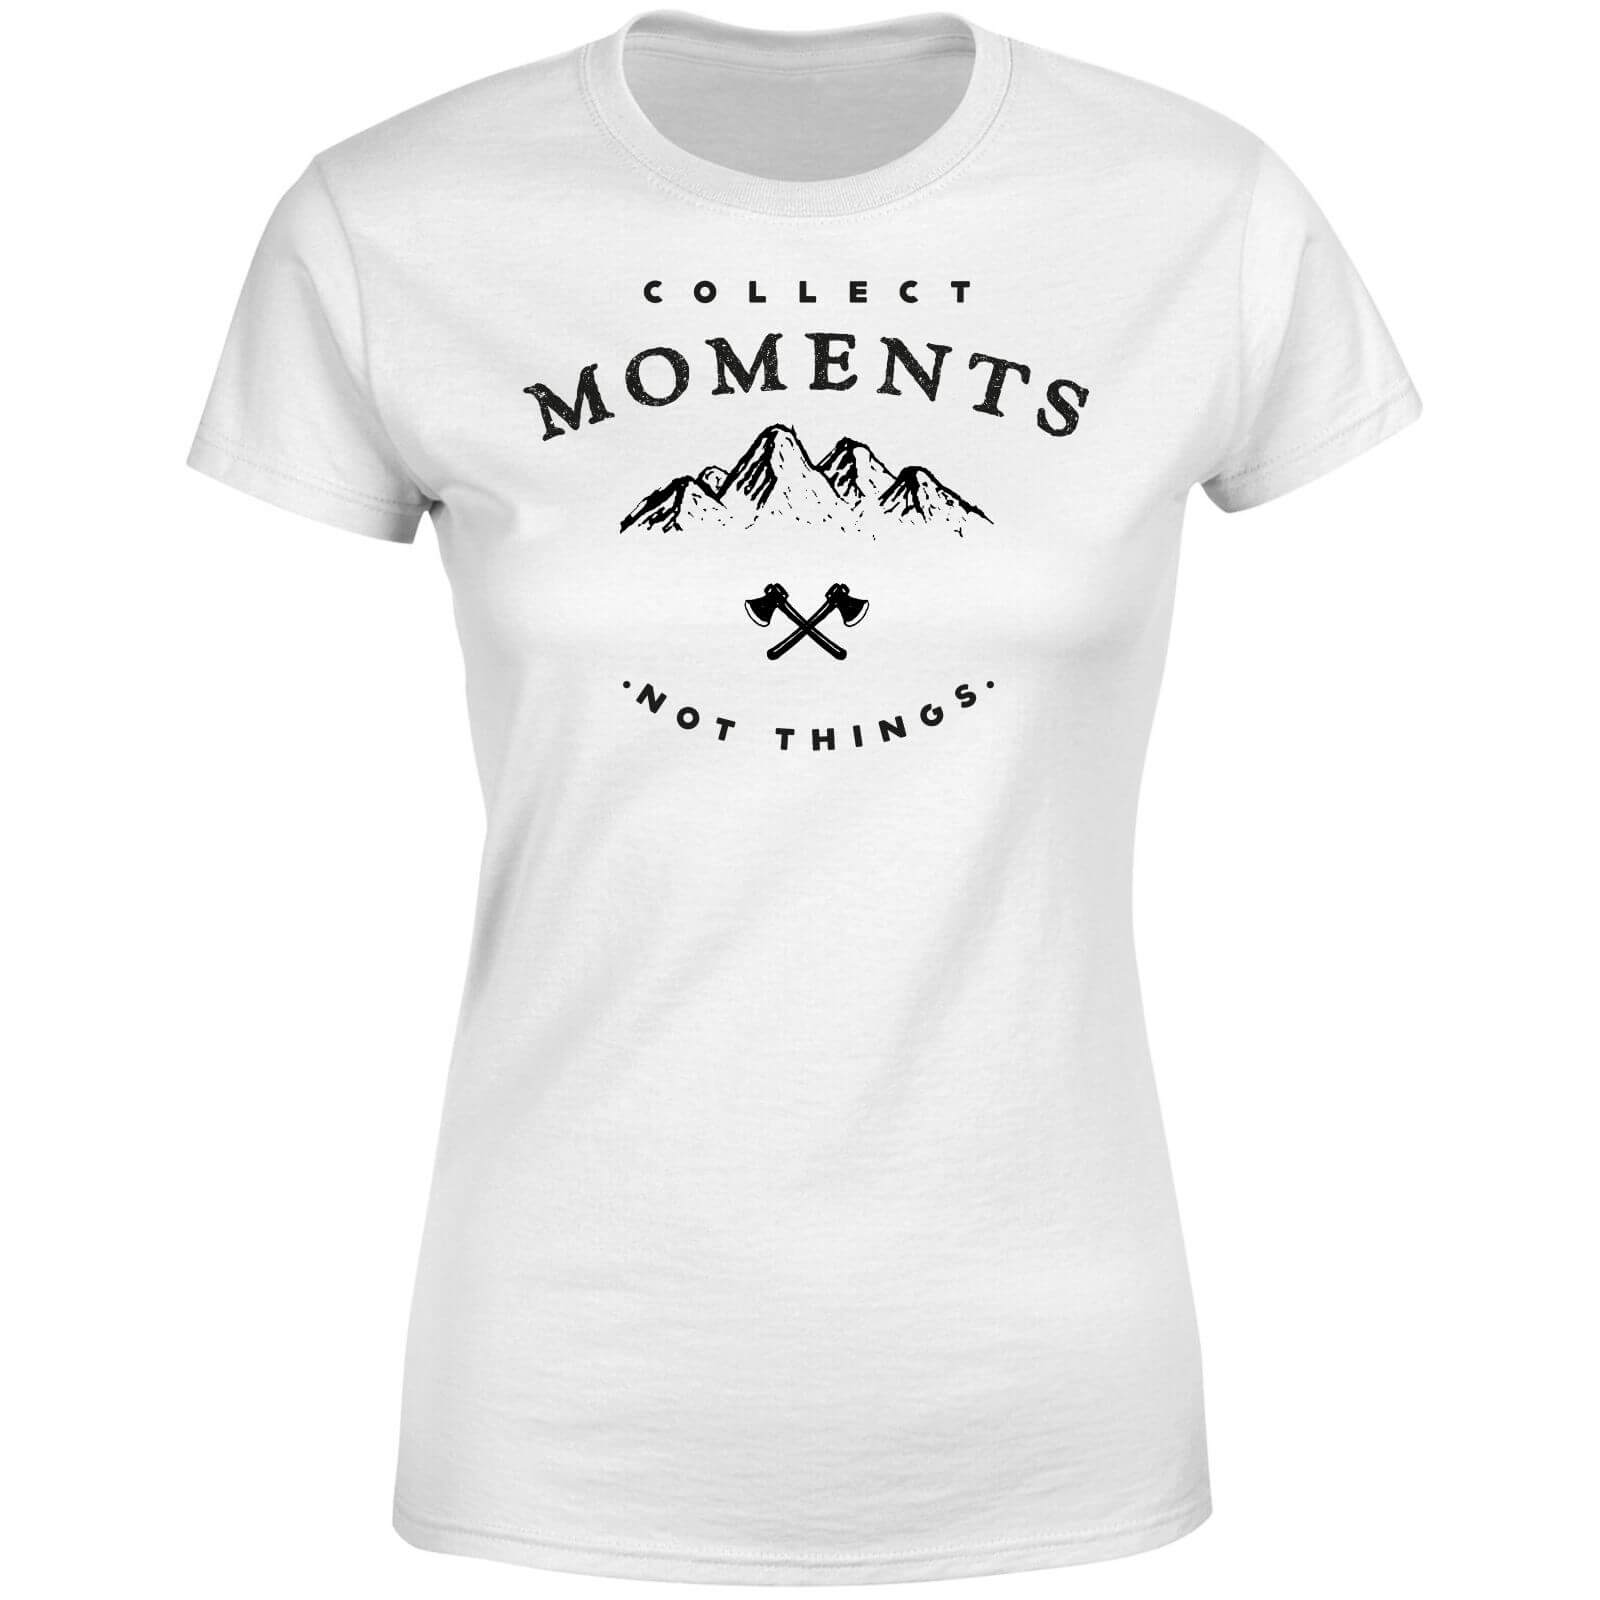 Collect Moments, Not Things Women